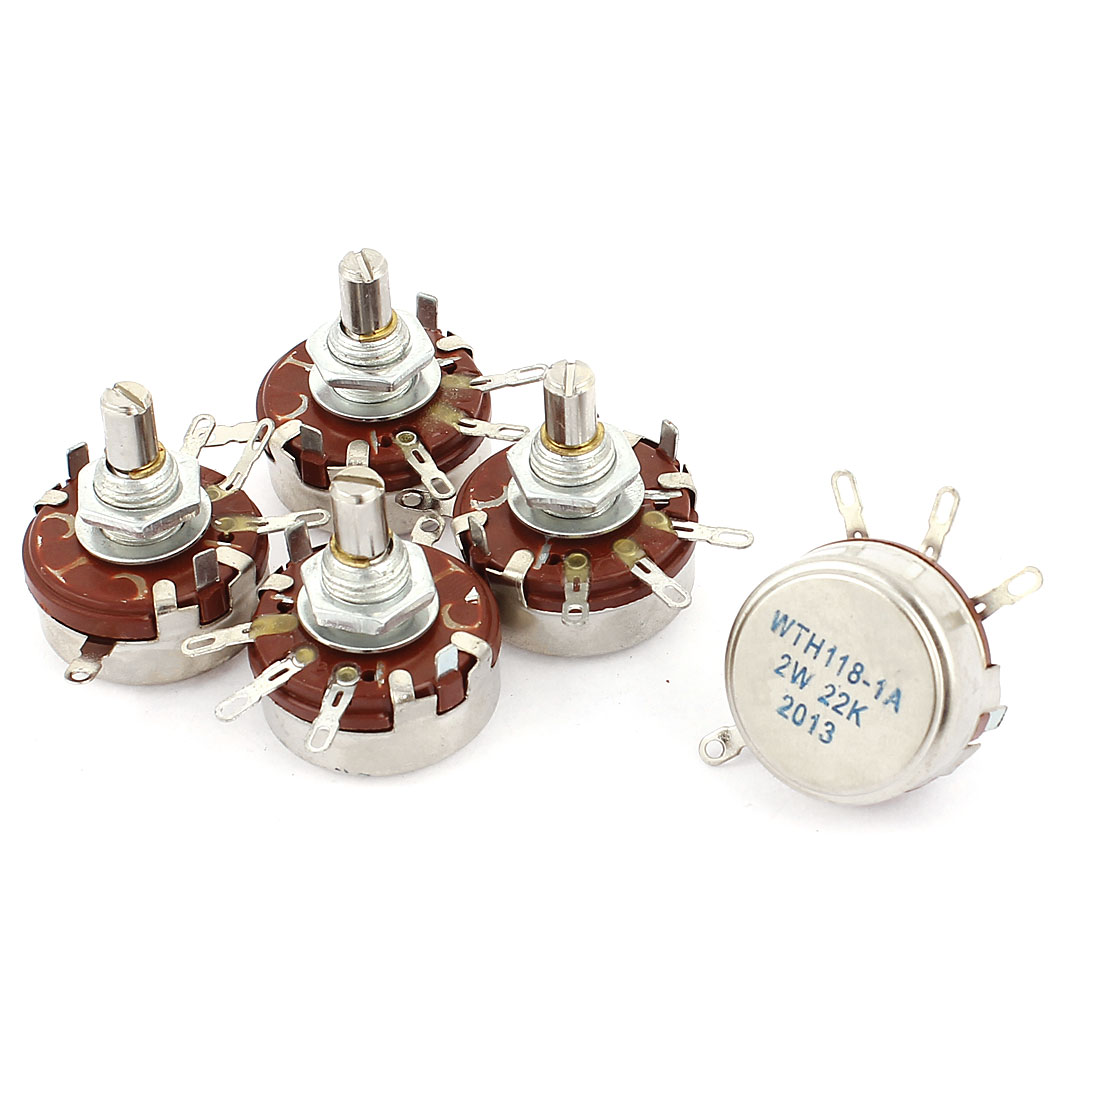 WTH118-1A 2W 22K Ohm Rotary Taper Carbon Potentiometer 5Pcs